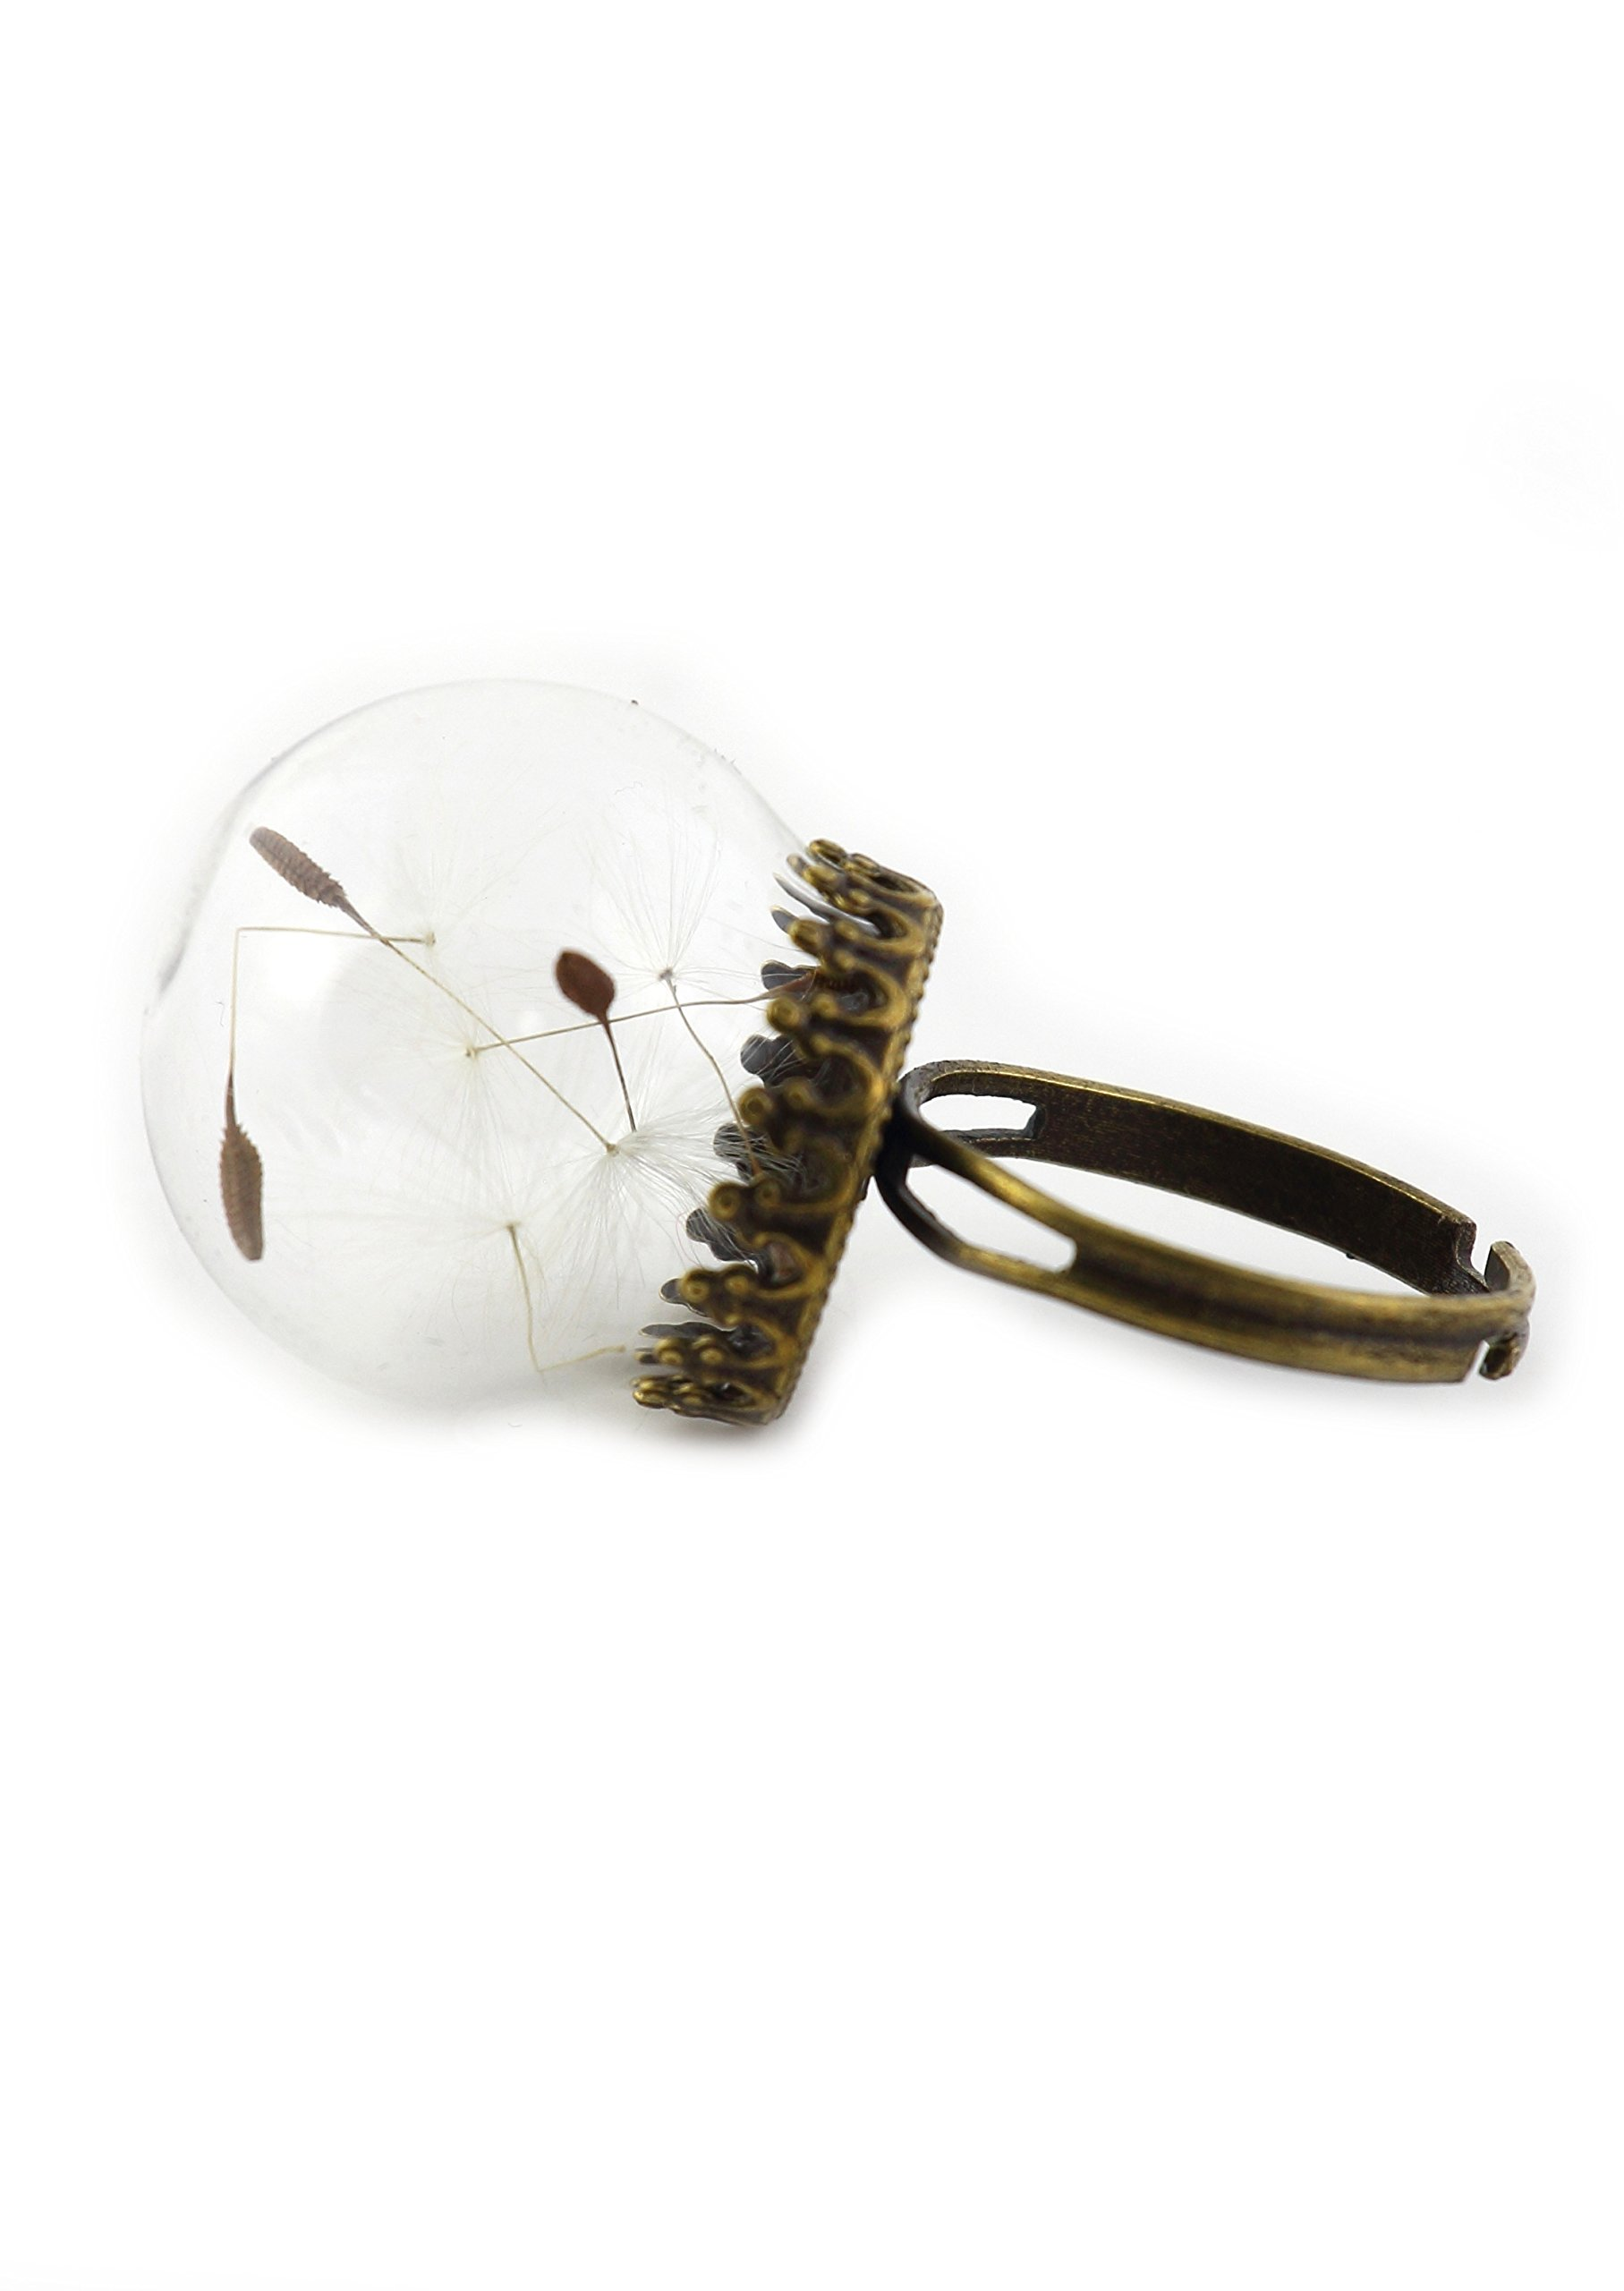 Magic Metal Wishing Dandelion Seeds Ring Antique Gold Tone RM36 Sealed Orb Dome Statement Fashion Jewelry